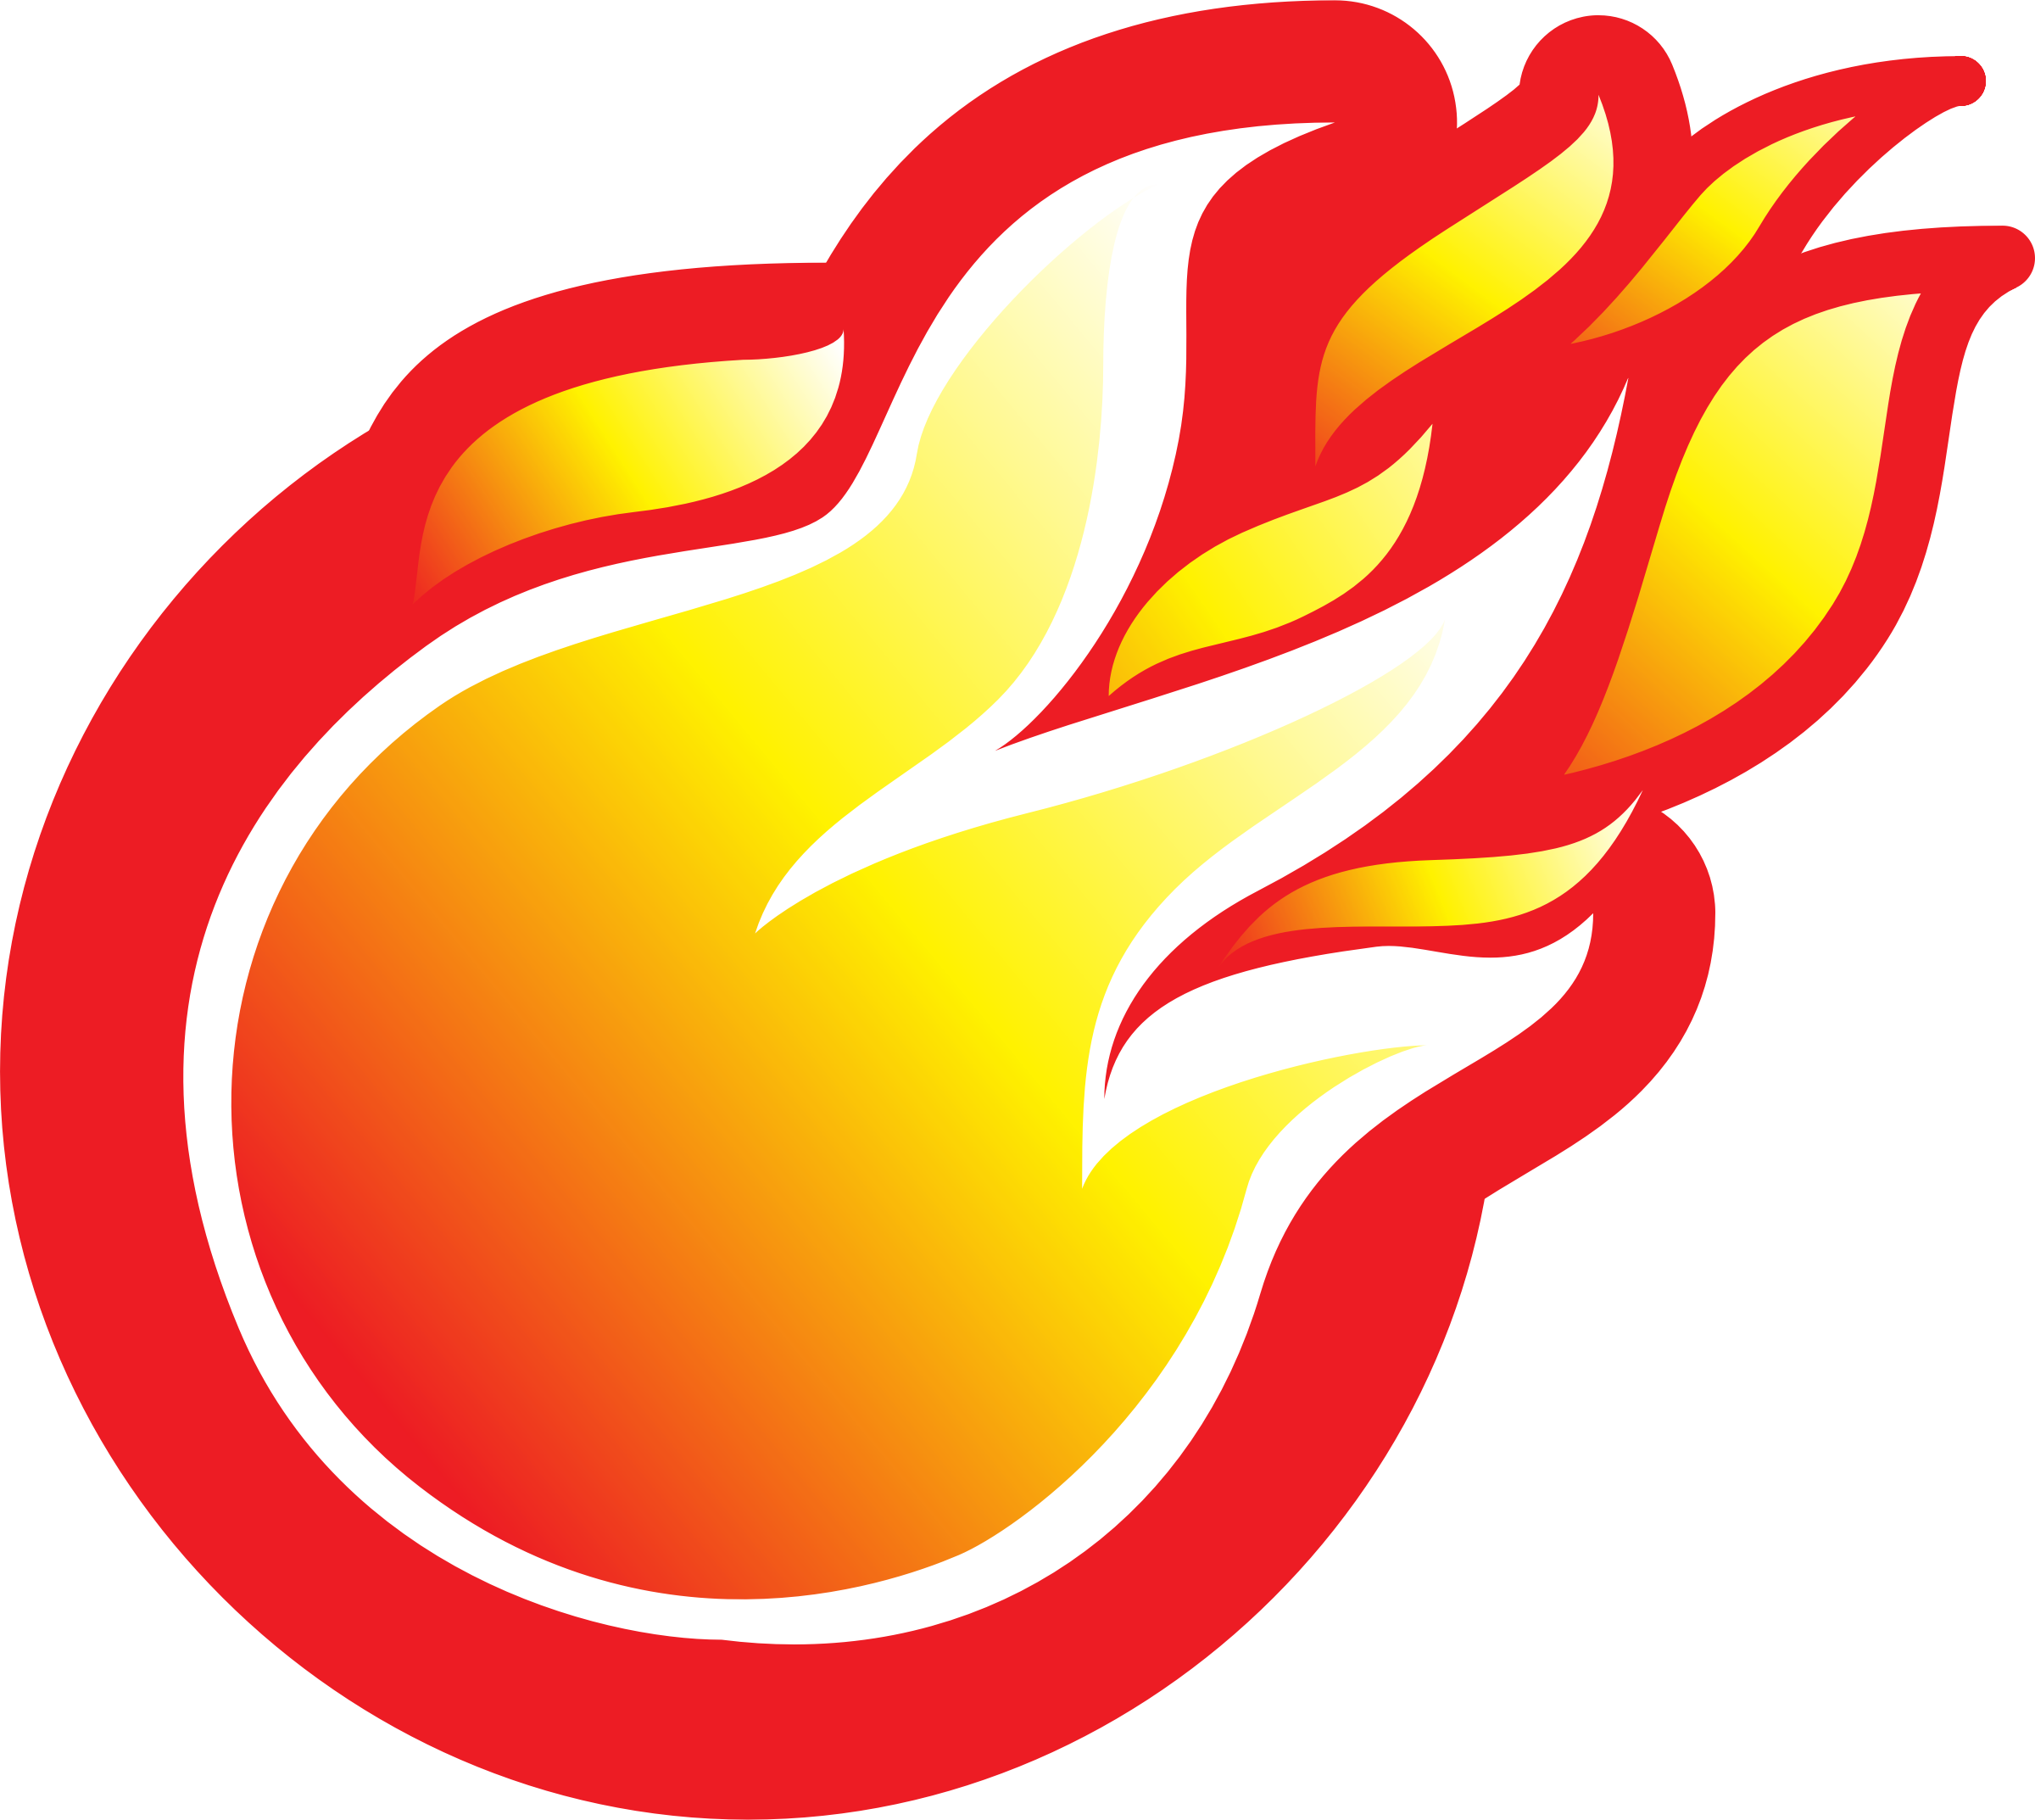 Heat clipart hot man. Flame fire image ruby